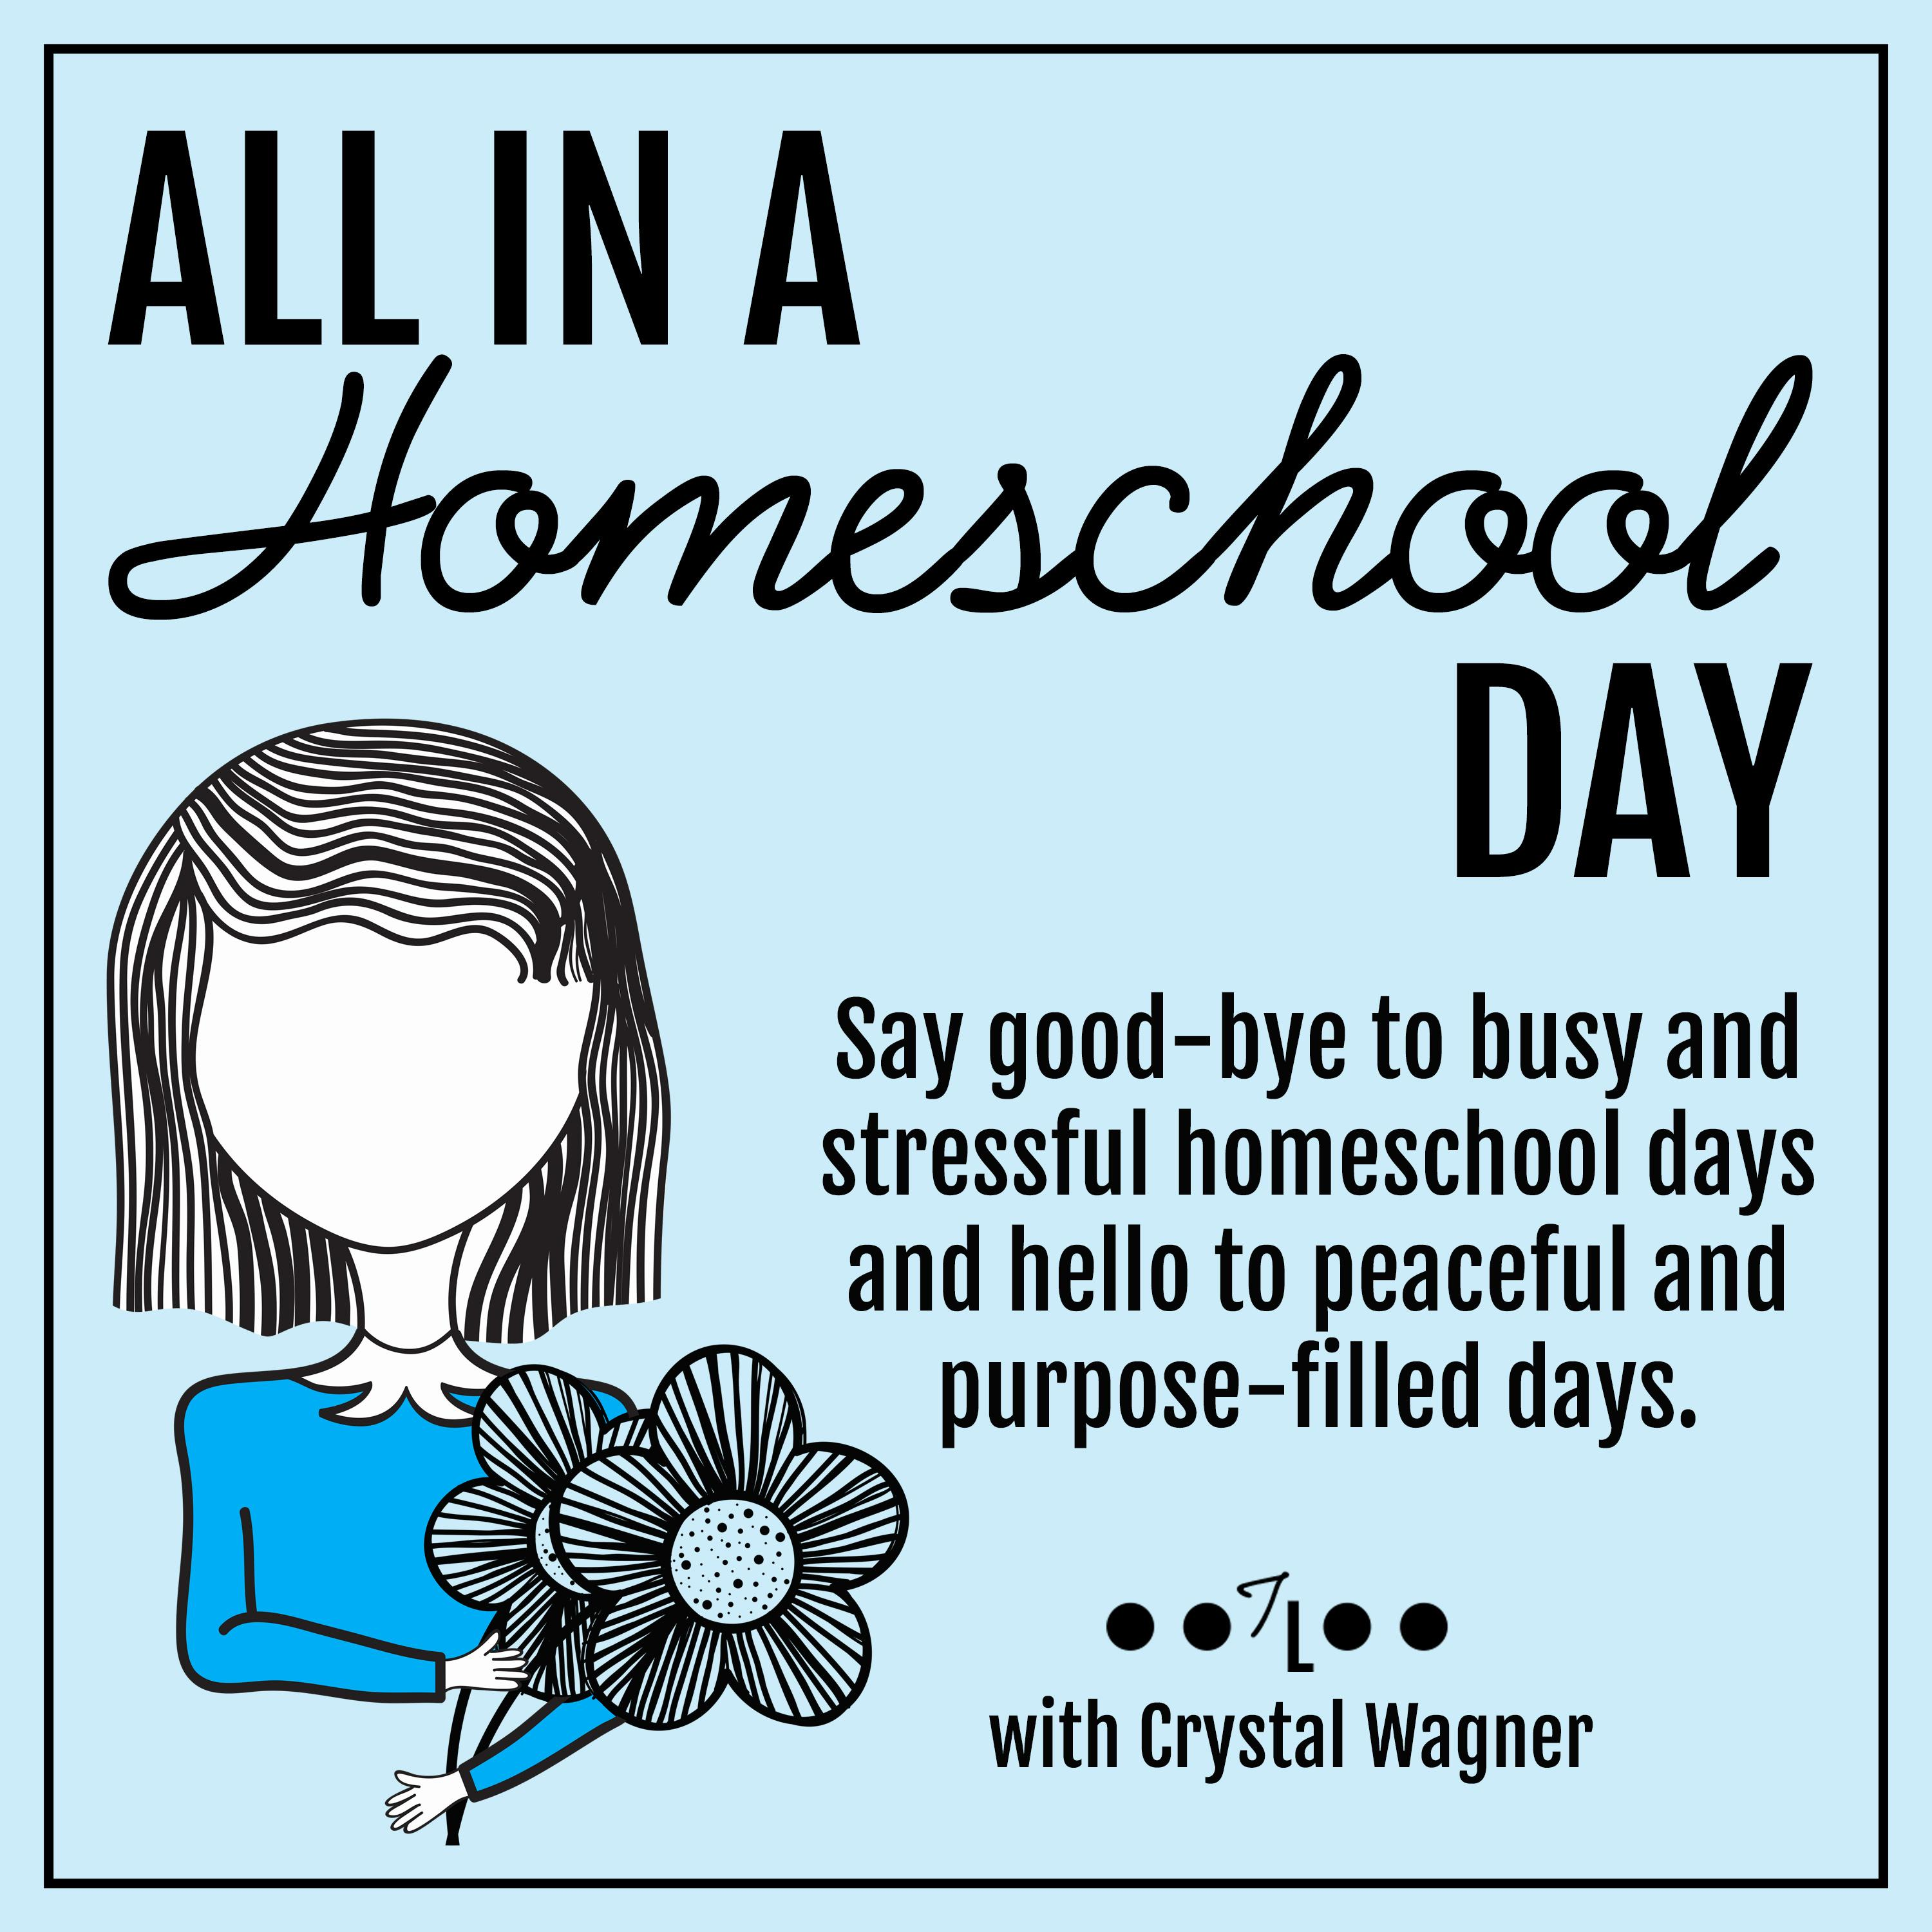 037: Household Management Tips For Homeschool Moms